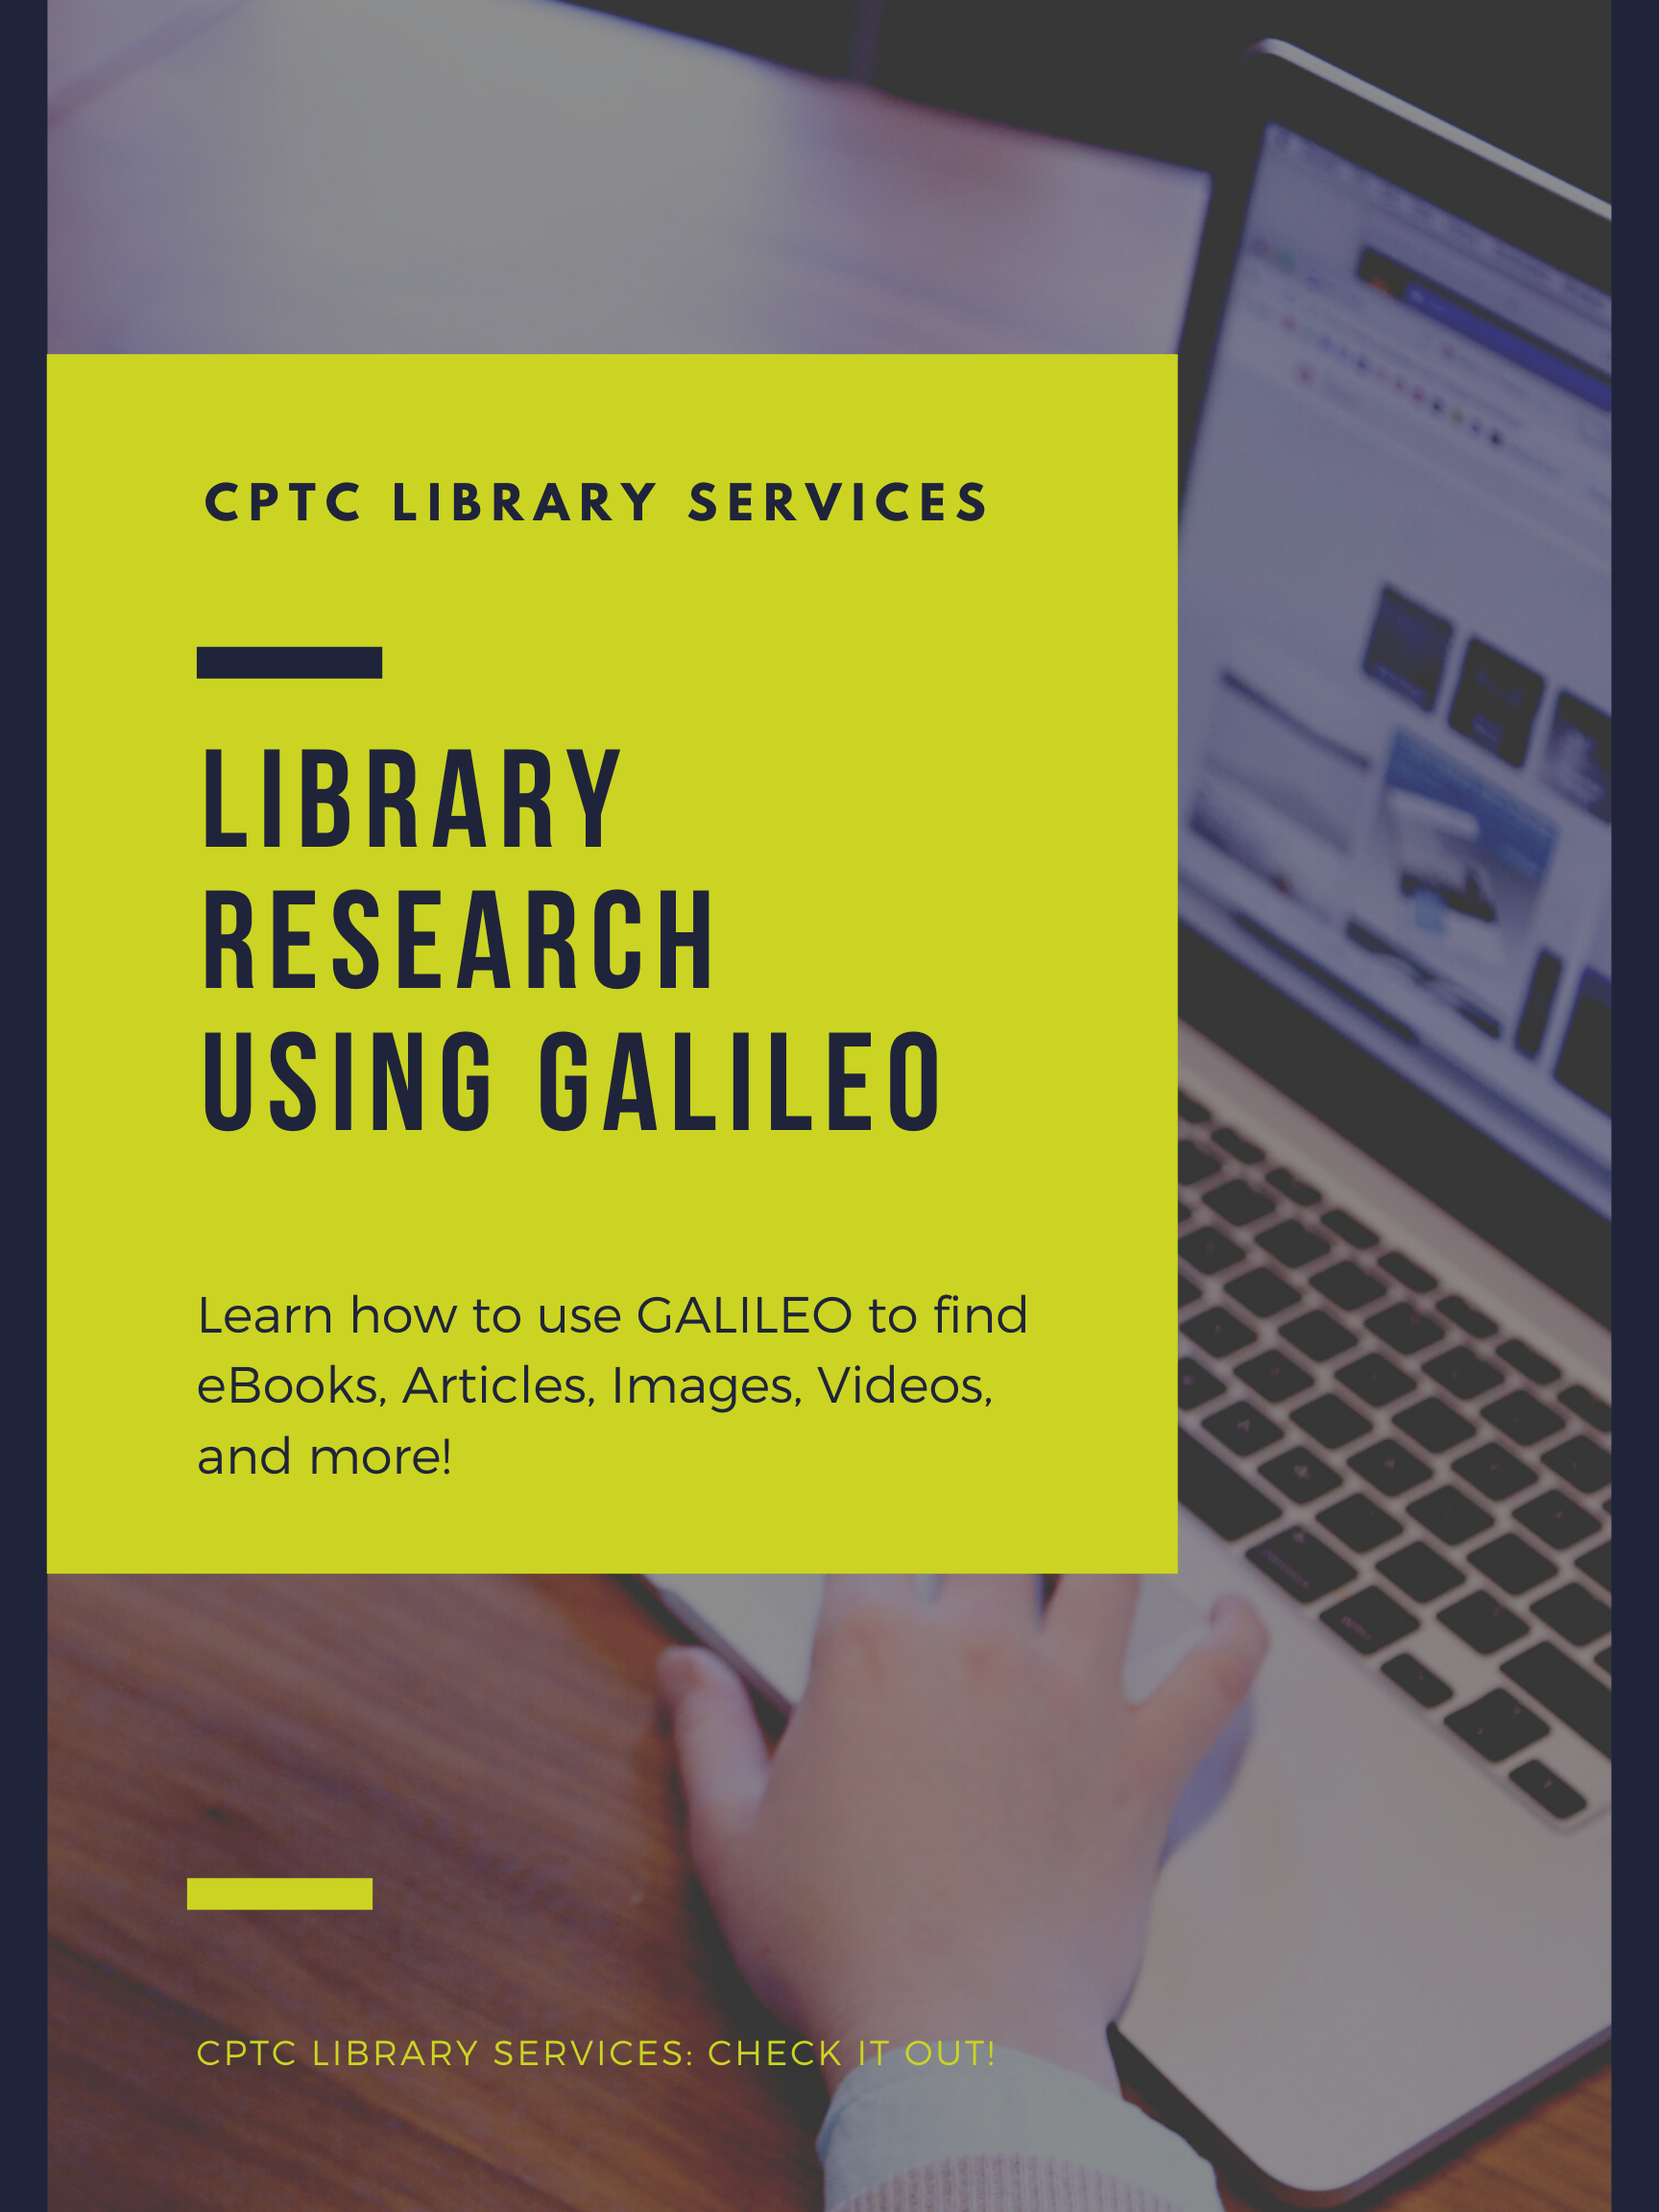 "GALILEO poster with person using a computer. Wording says, ""CPTC Library Services. Library Research Using GALILEO. Learn how to use GALILEO to find eBook, Articles, Images, Videos, and more. CPTC Library Services: Check It Out!"""